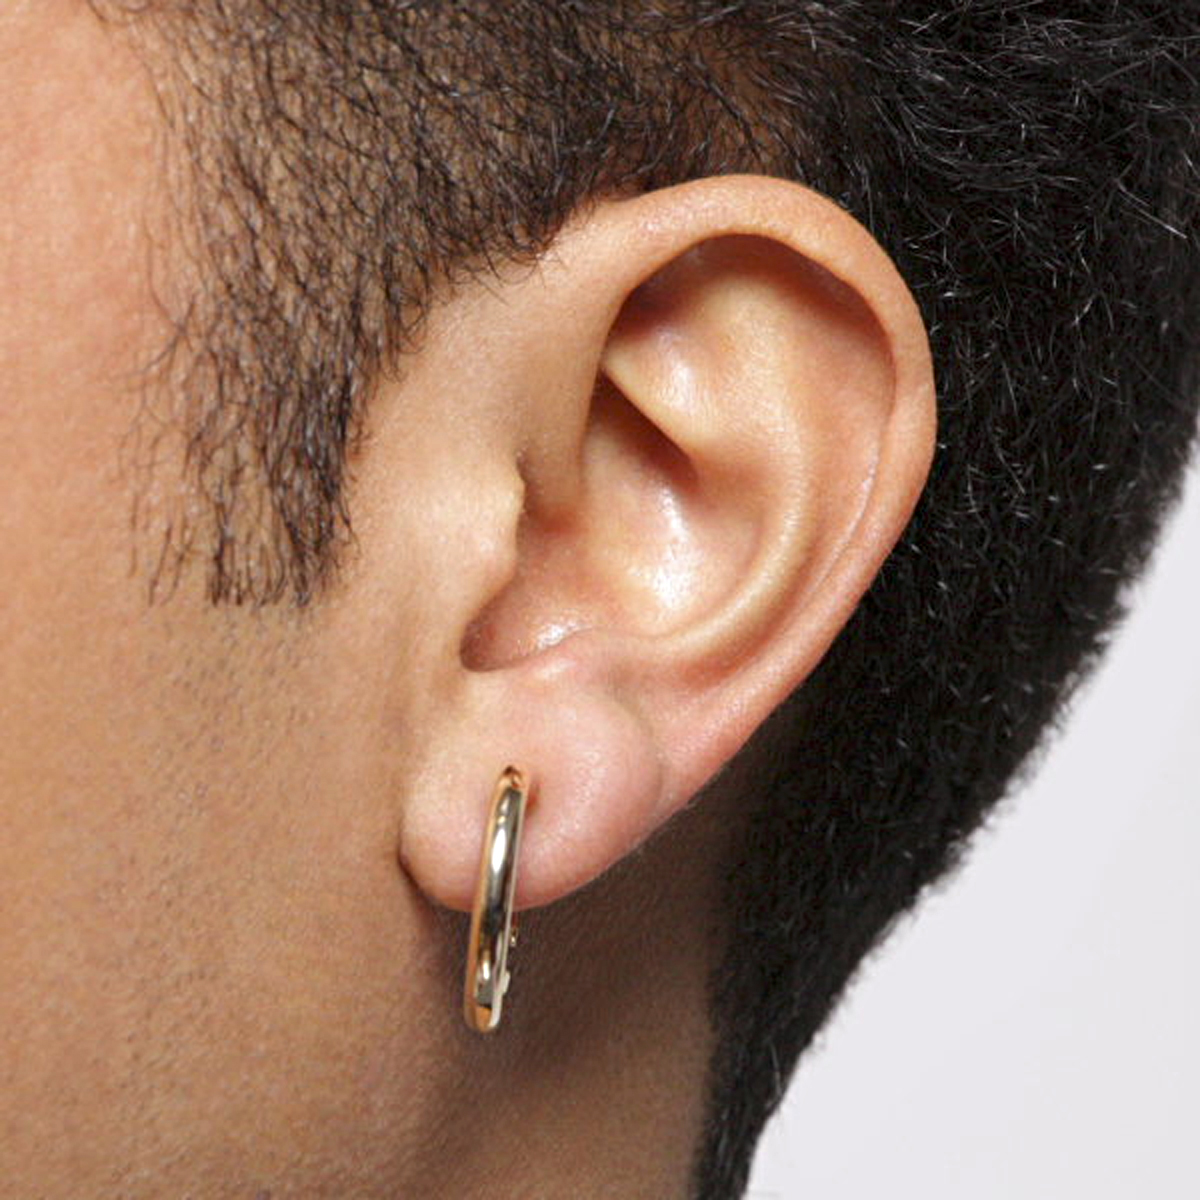 mens earrings canada online